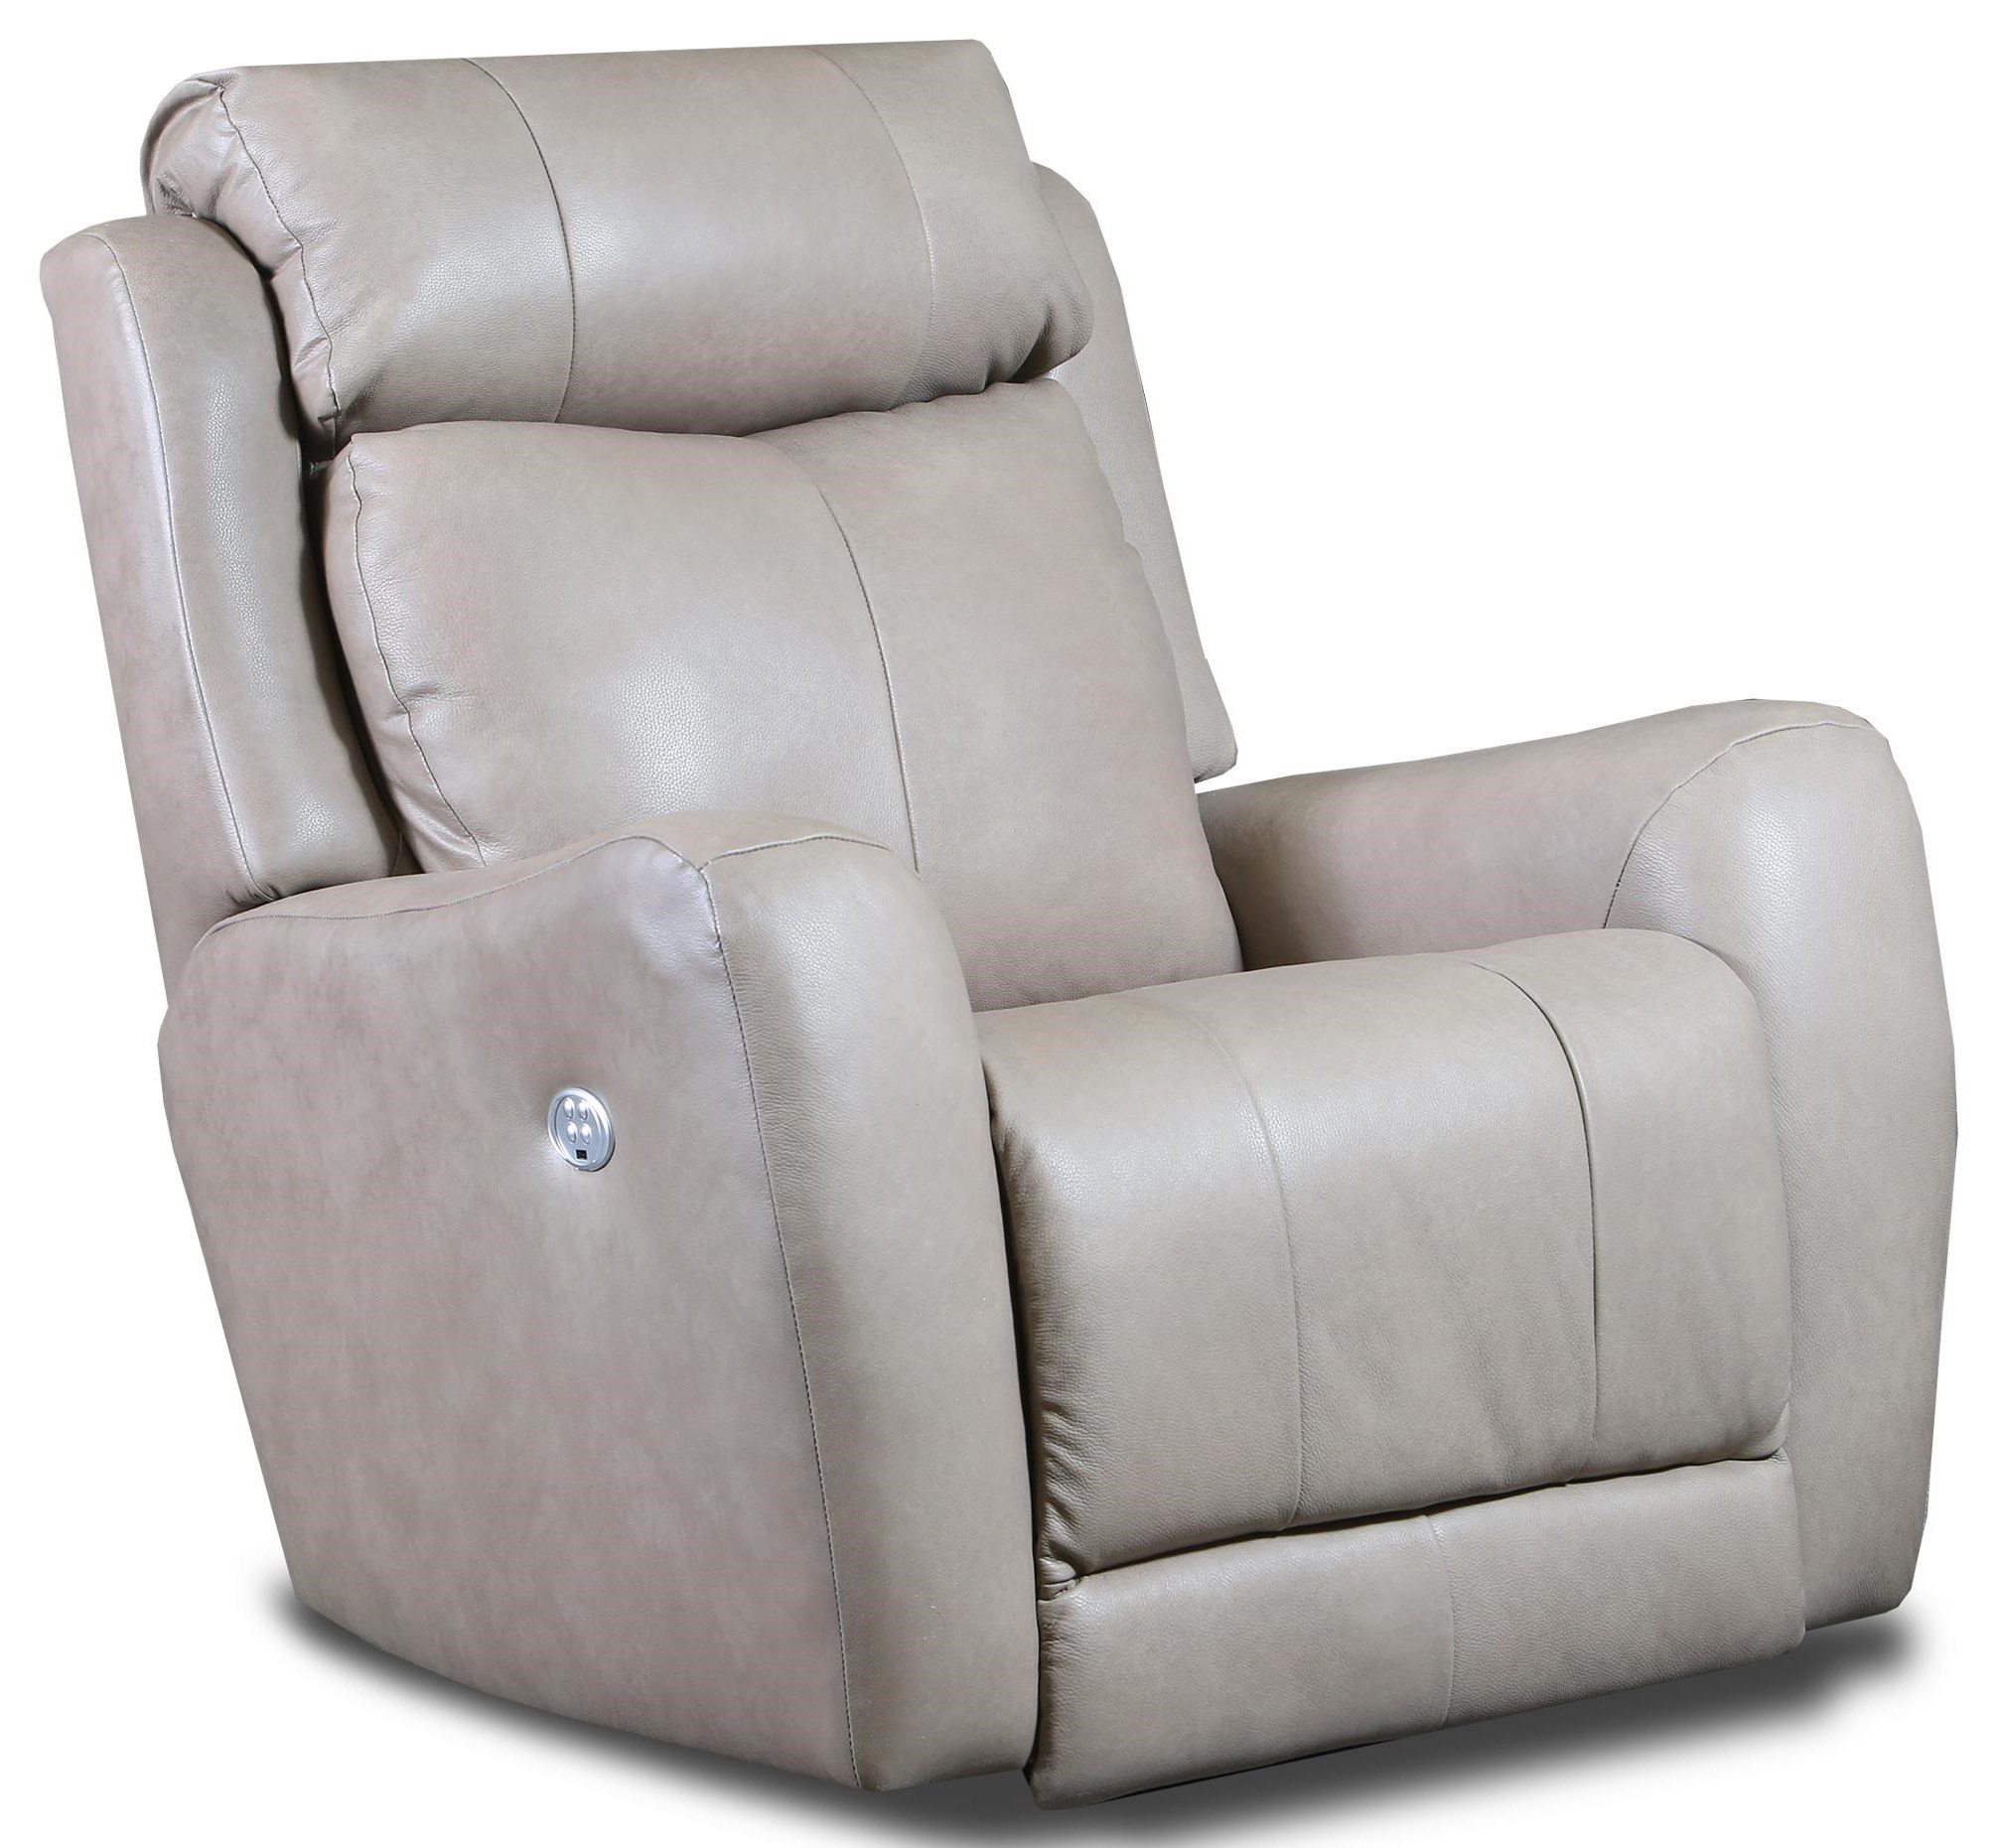 Leather Power Recliner 957-17